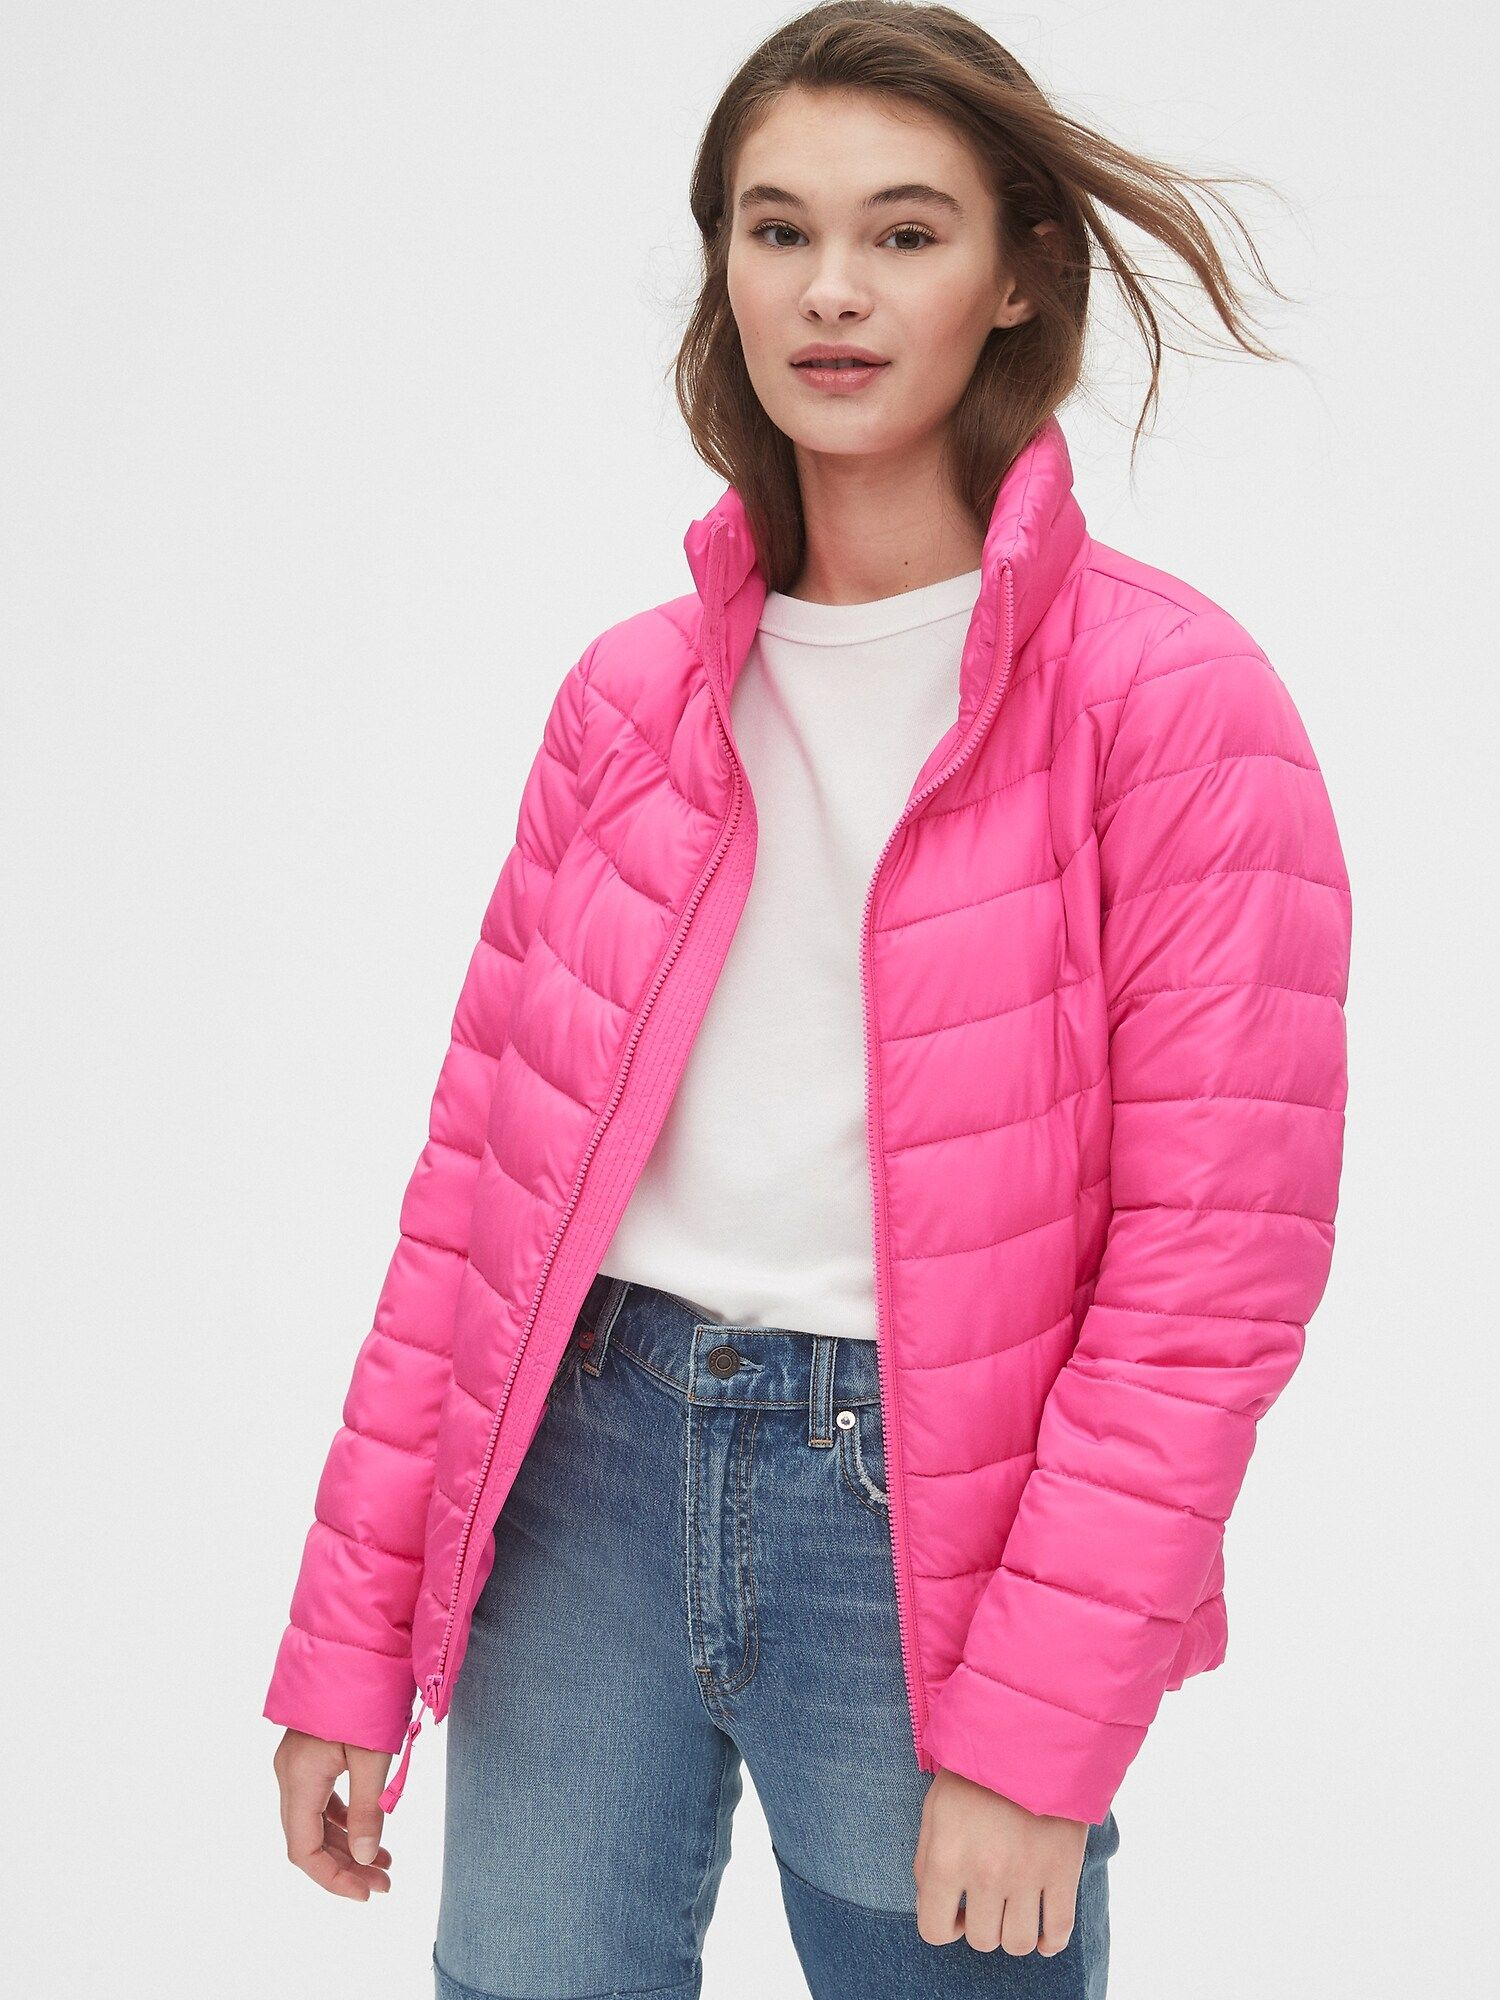 Gap Coldcontrol Lightweight Puffer Jacket Bright Neon Pink Spring Sweater Outfits Jackets Puffer Jacket Outfit [ 2000 x 1500 Pixel ]